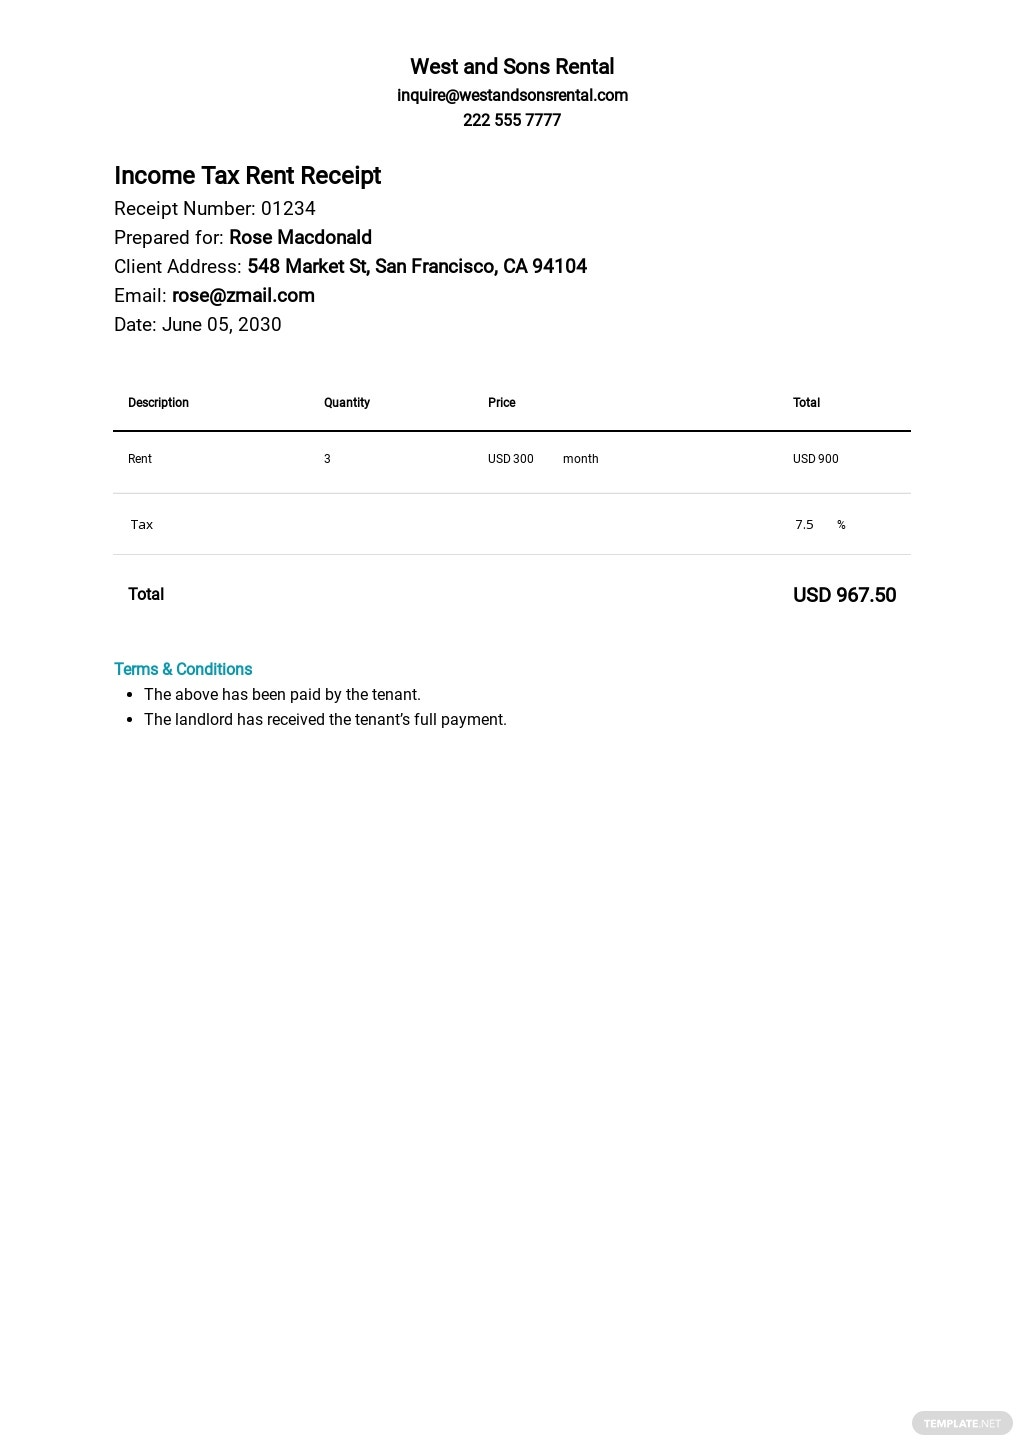 Income Tax Rent Receipt Template